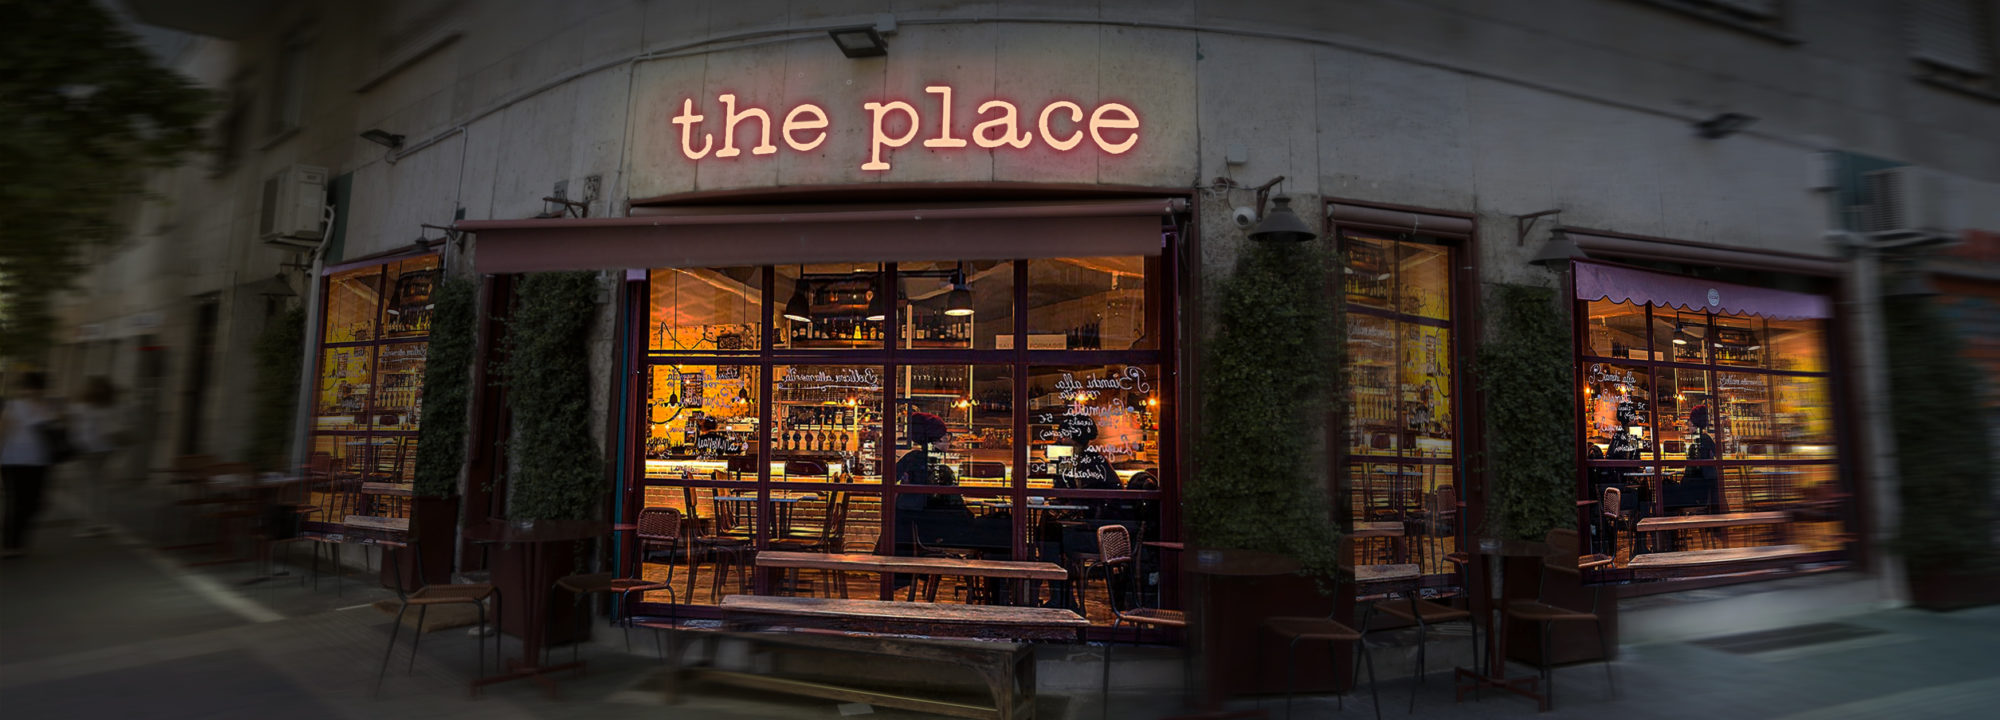 The Place Paolo Genovese